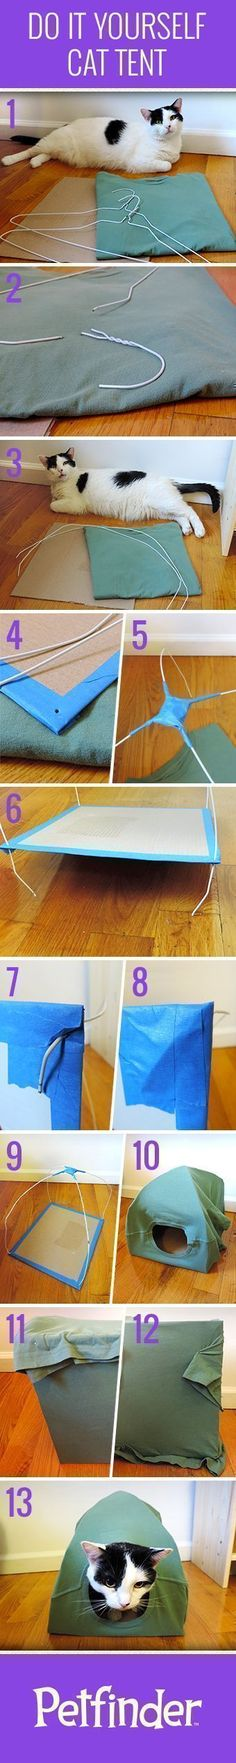 Make your cat a happy camper by putting together this easy DIY project. It just takes a couple of coat hangers, cardboard, tape and an old t-shirt to make this cat tent - perfect for sleep and play! #catsdiytoy #cattentcardboard #diycattent #cattenttshirt #diycattentplays #camperprojects #diycattentprojects #camperdiyprojects